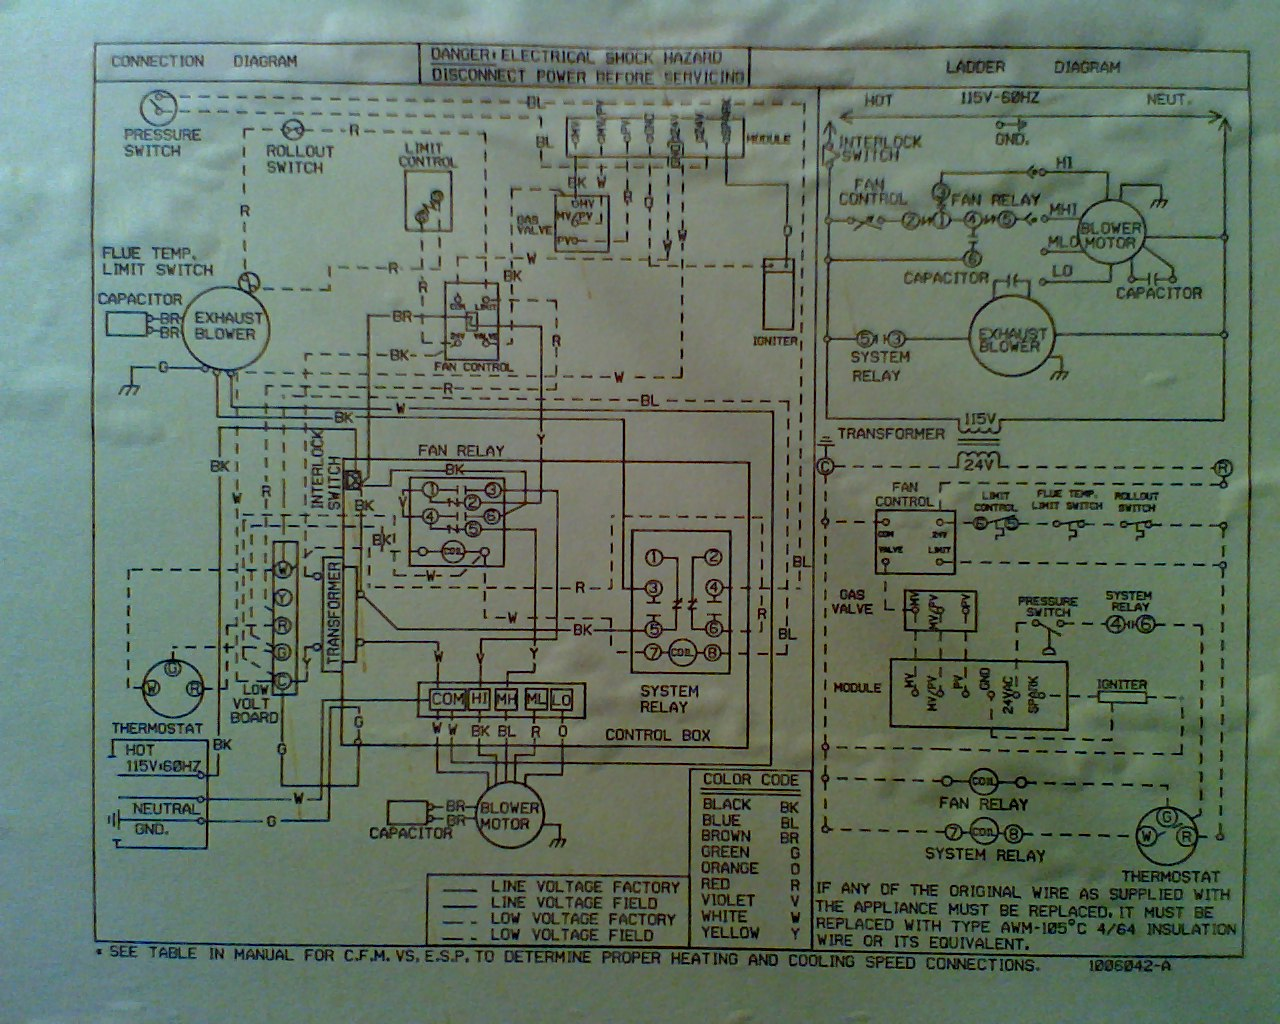 2009 11 20_231603_1120091711a air conditioner y wire grihon com ac, coolers & devices tempstar 2200 air conditioner wiring diagram at soozxer.org